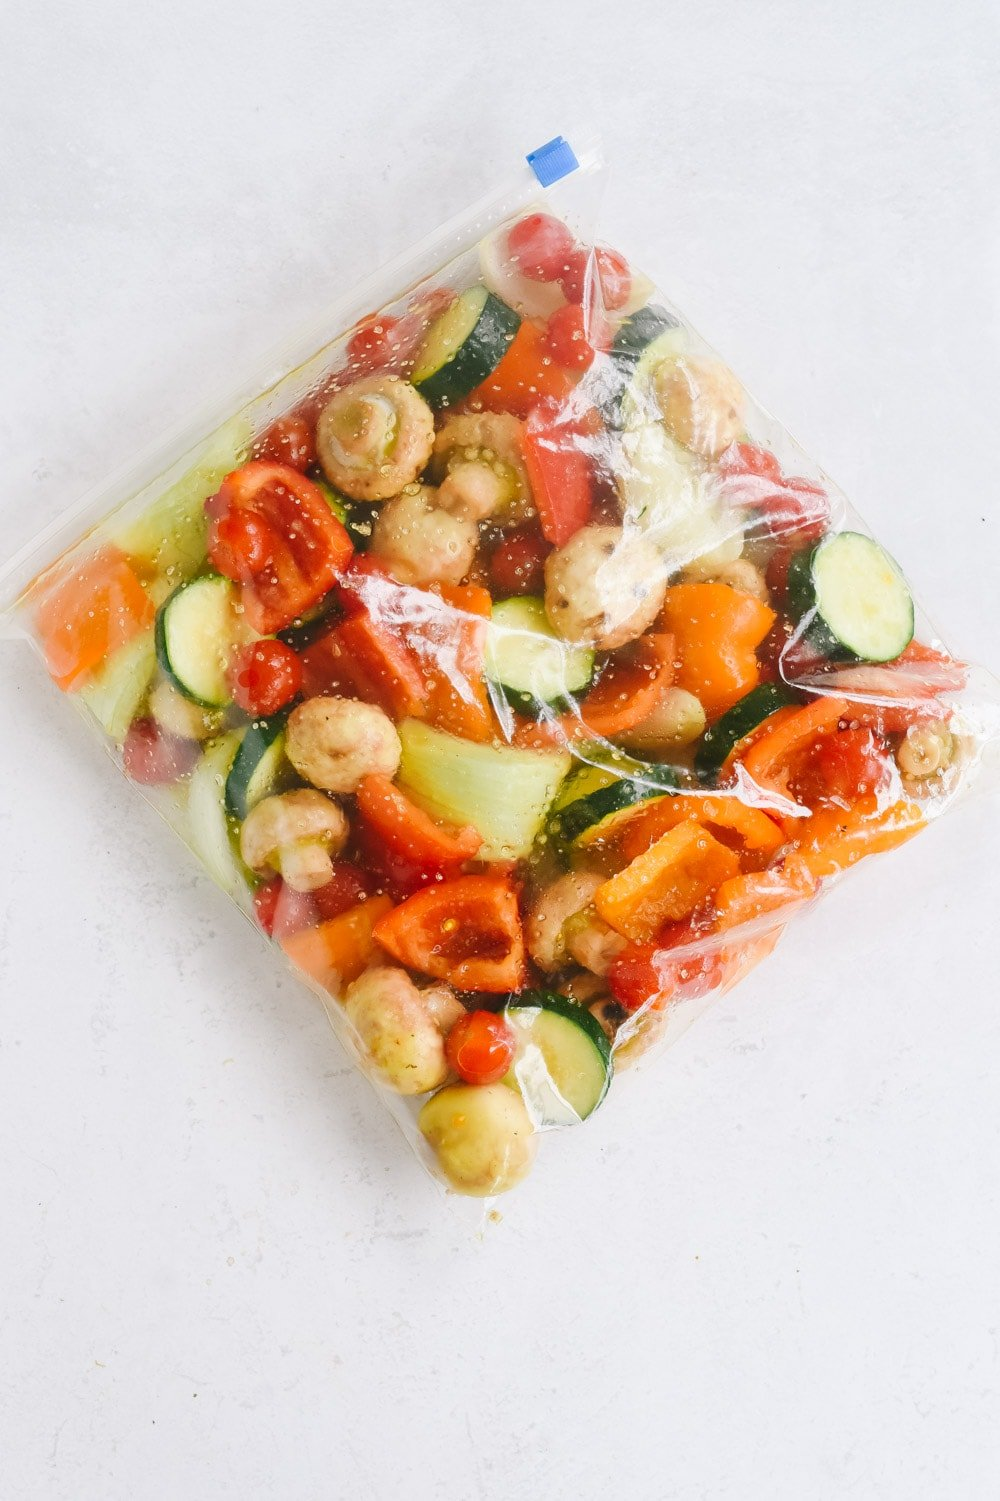 veggies for shish kabob in a bag